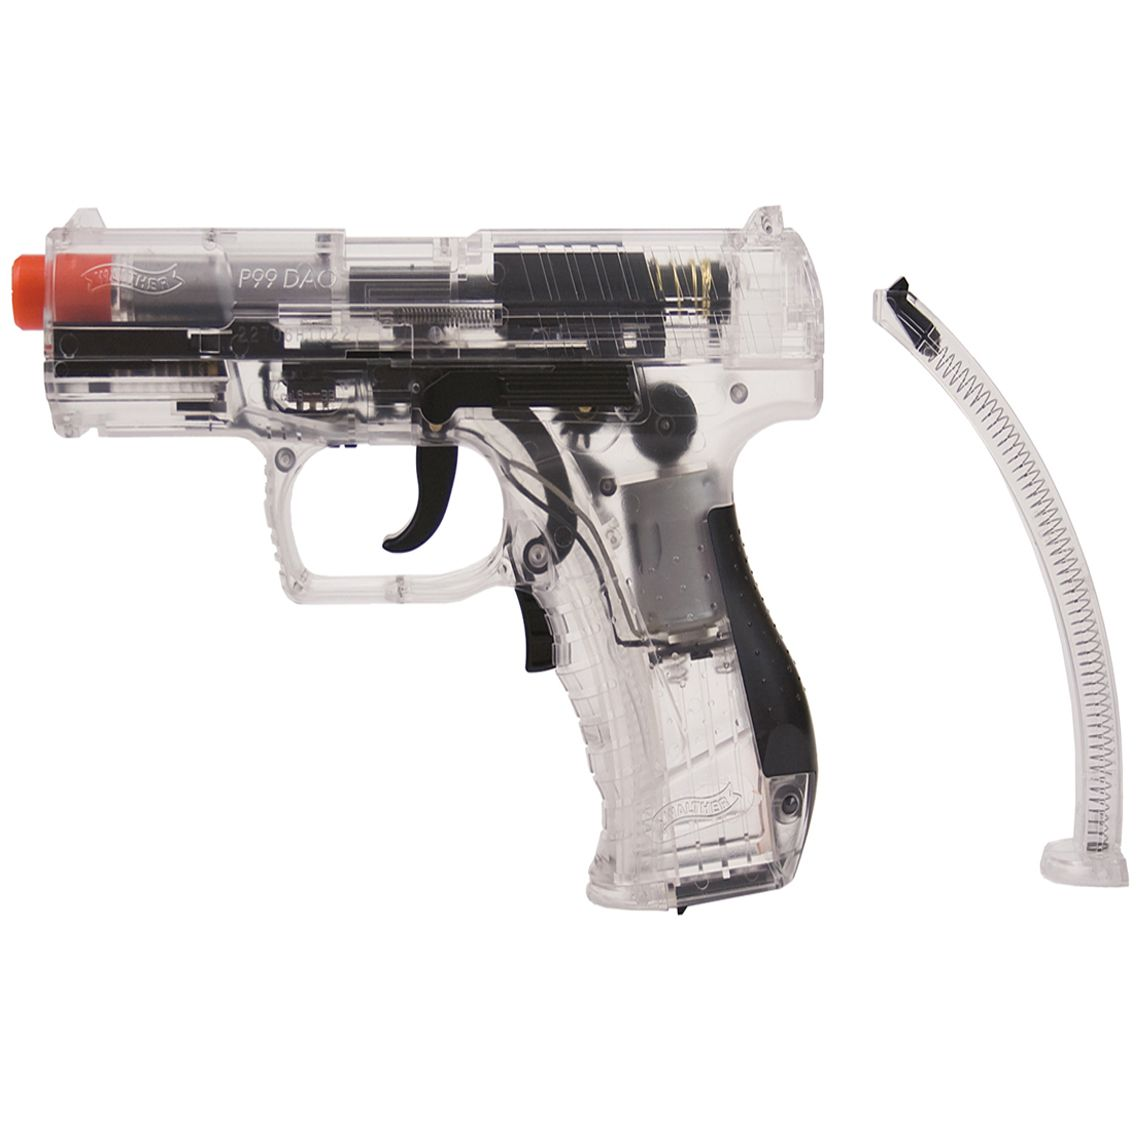 buy cheap walther 2272009 p99 clear electric airsoft gun ...